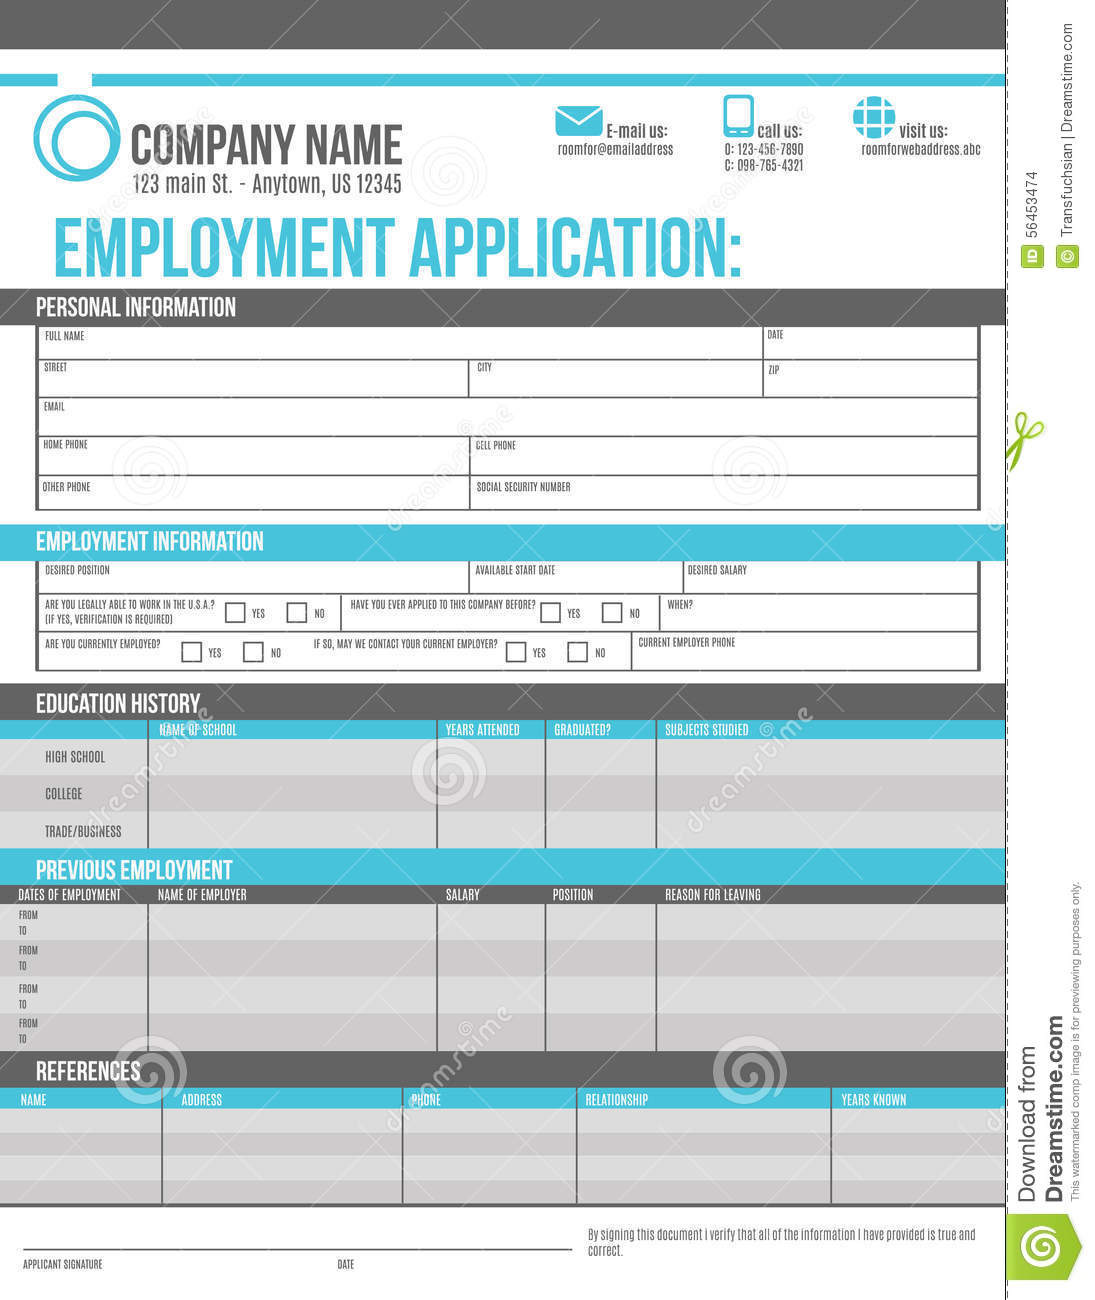 Employee Application Template Vector Image 56453474 – Employee Application